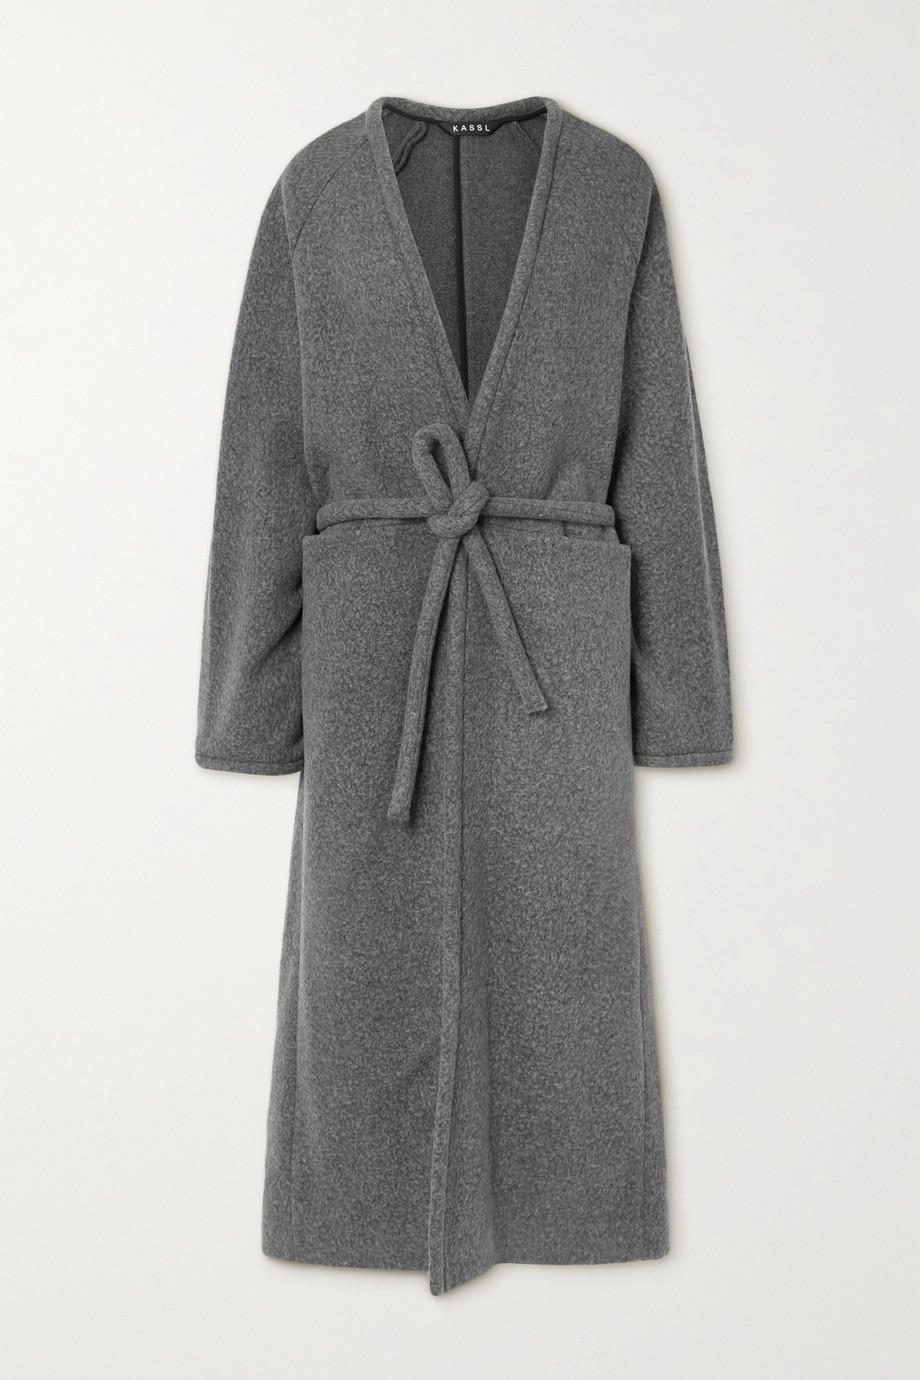 KASSL EDITIONS Belted wool-blend coat